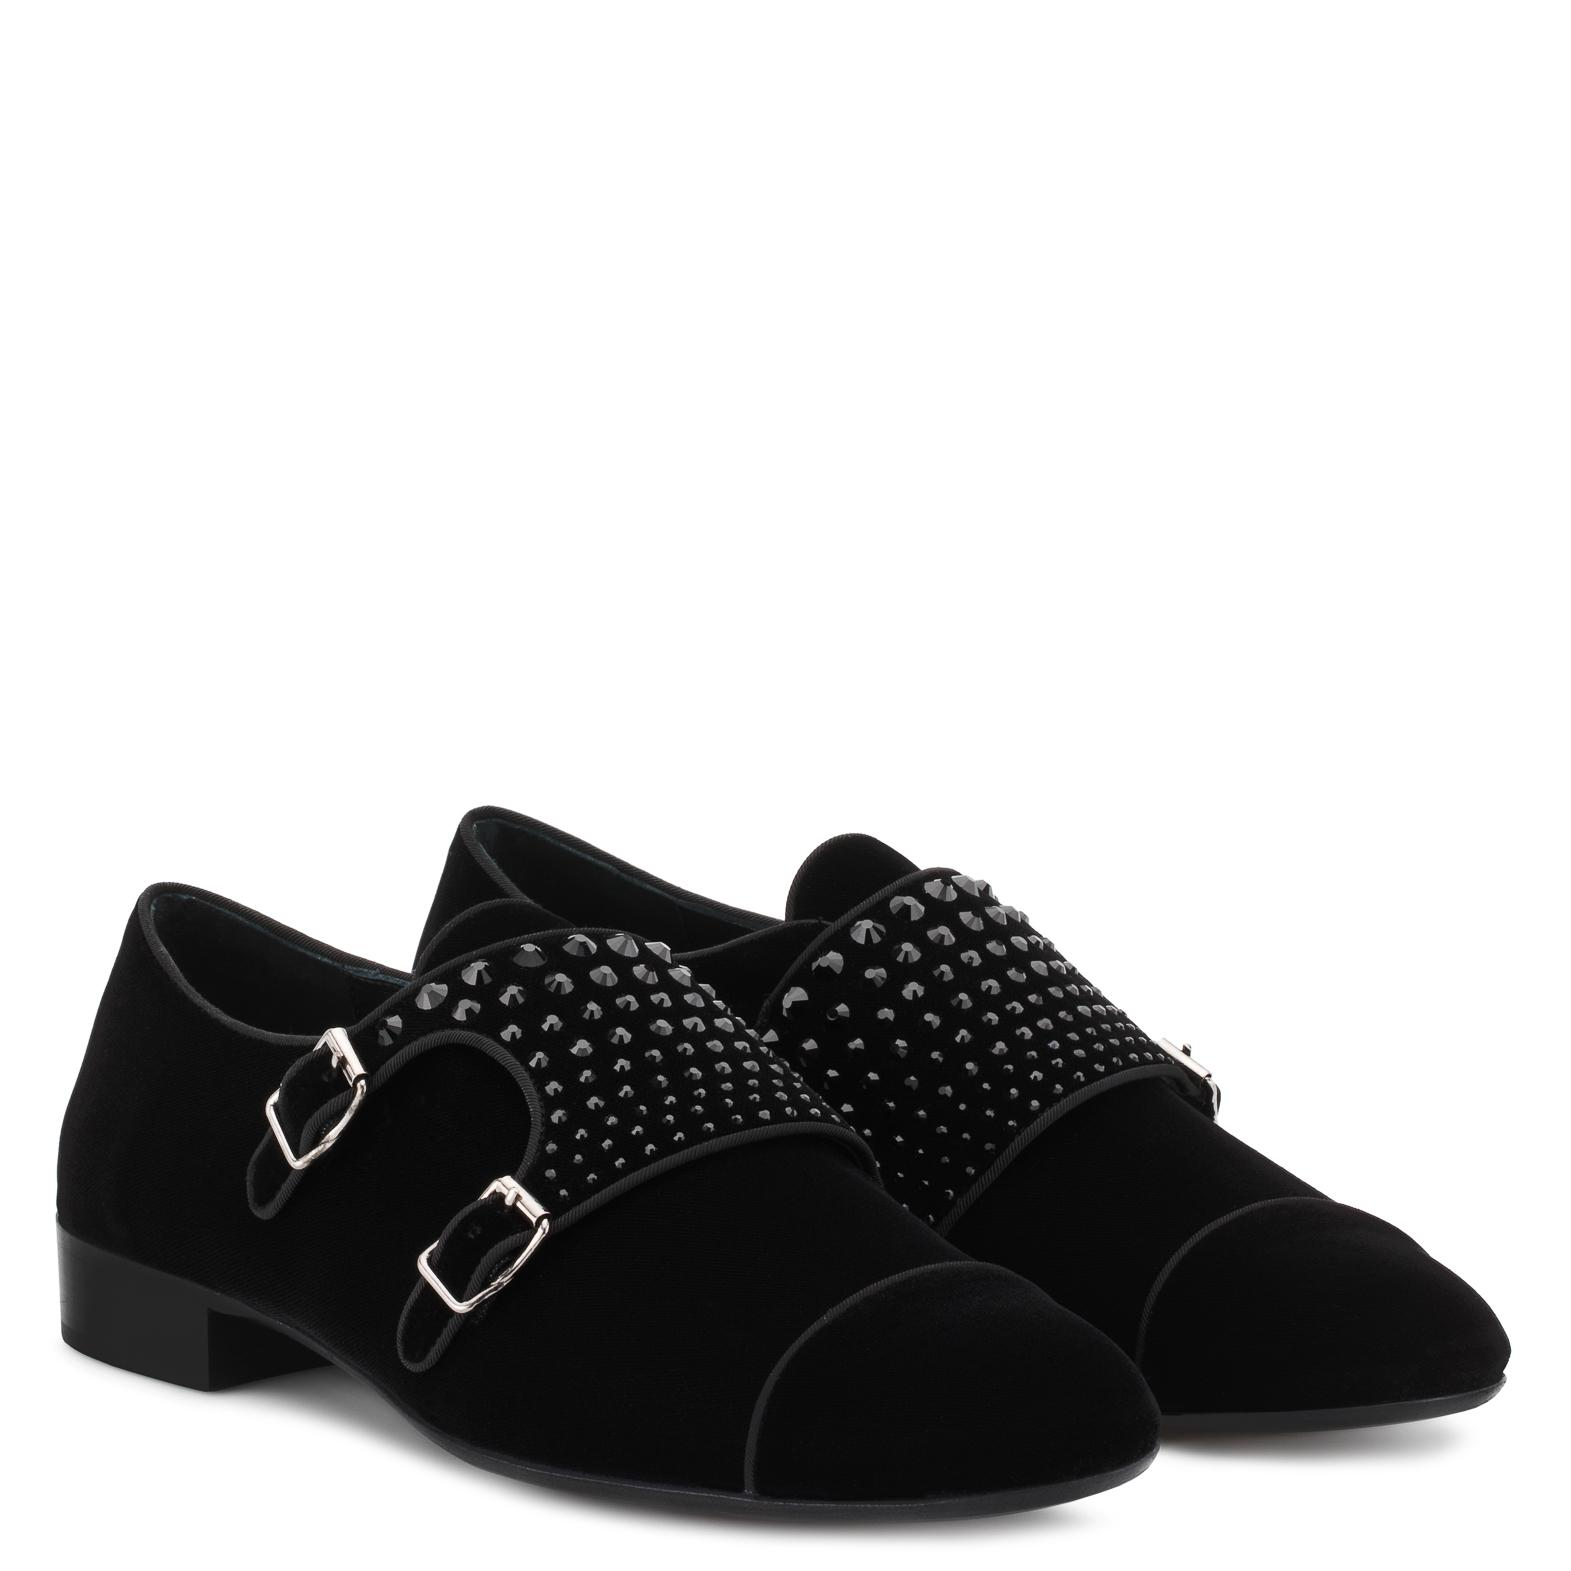 Giuseppe Zanotti Velvet shoes with double buckles and crystals JOHNNY CRYSTAL tXQSm3VRm